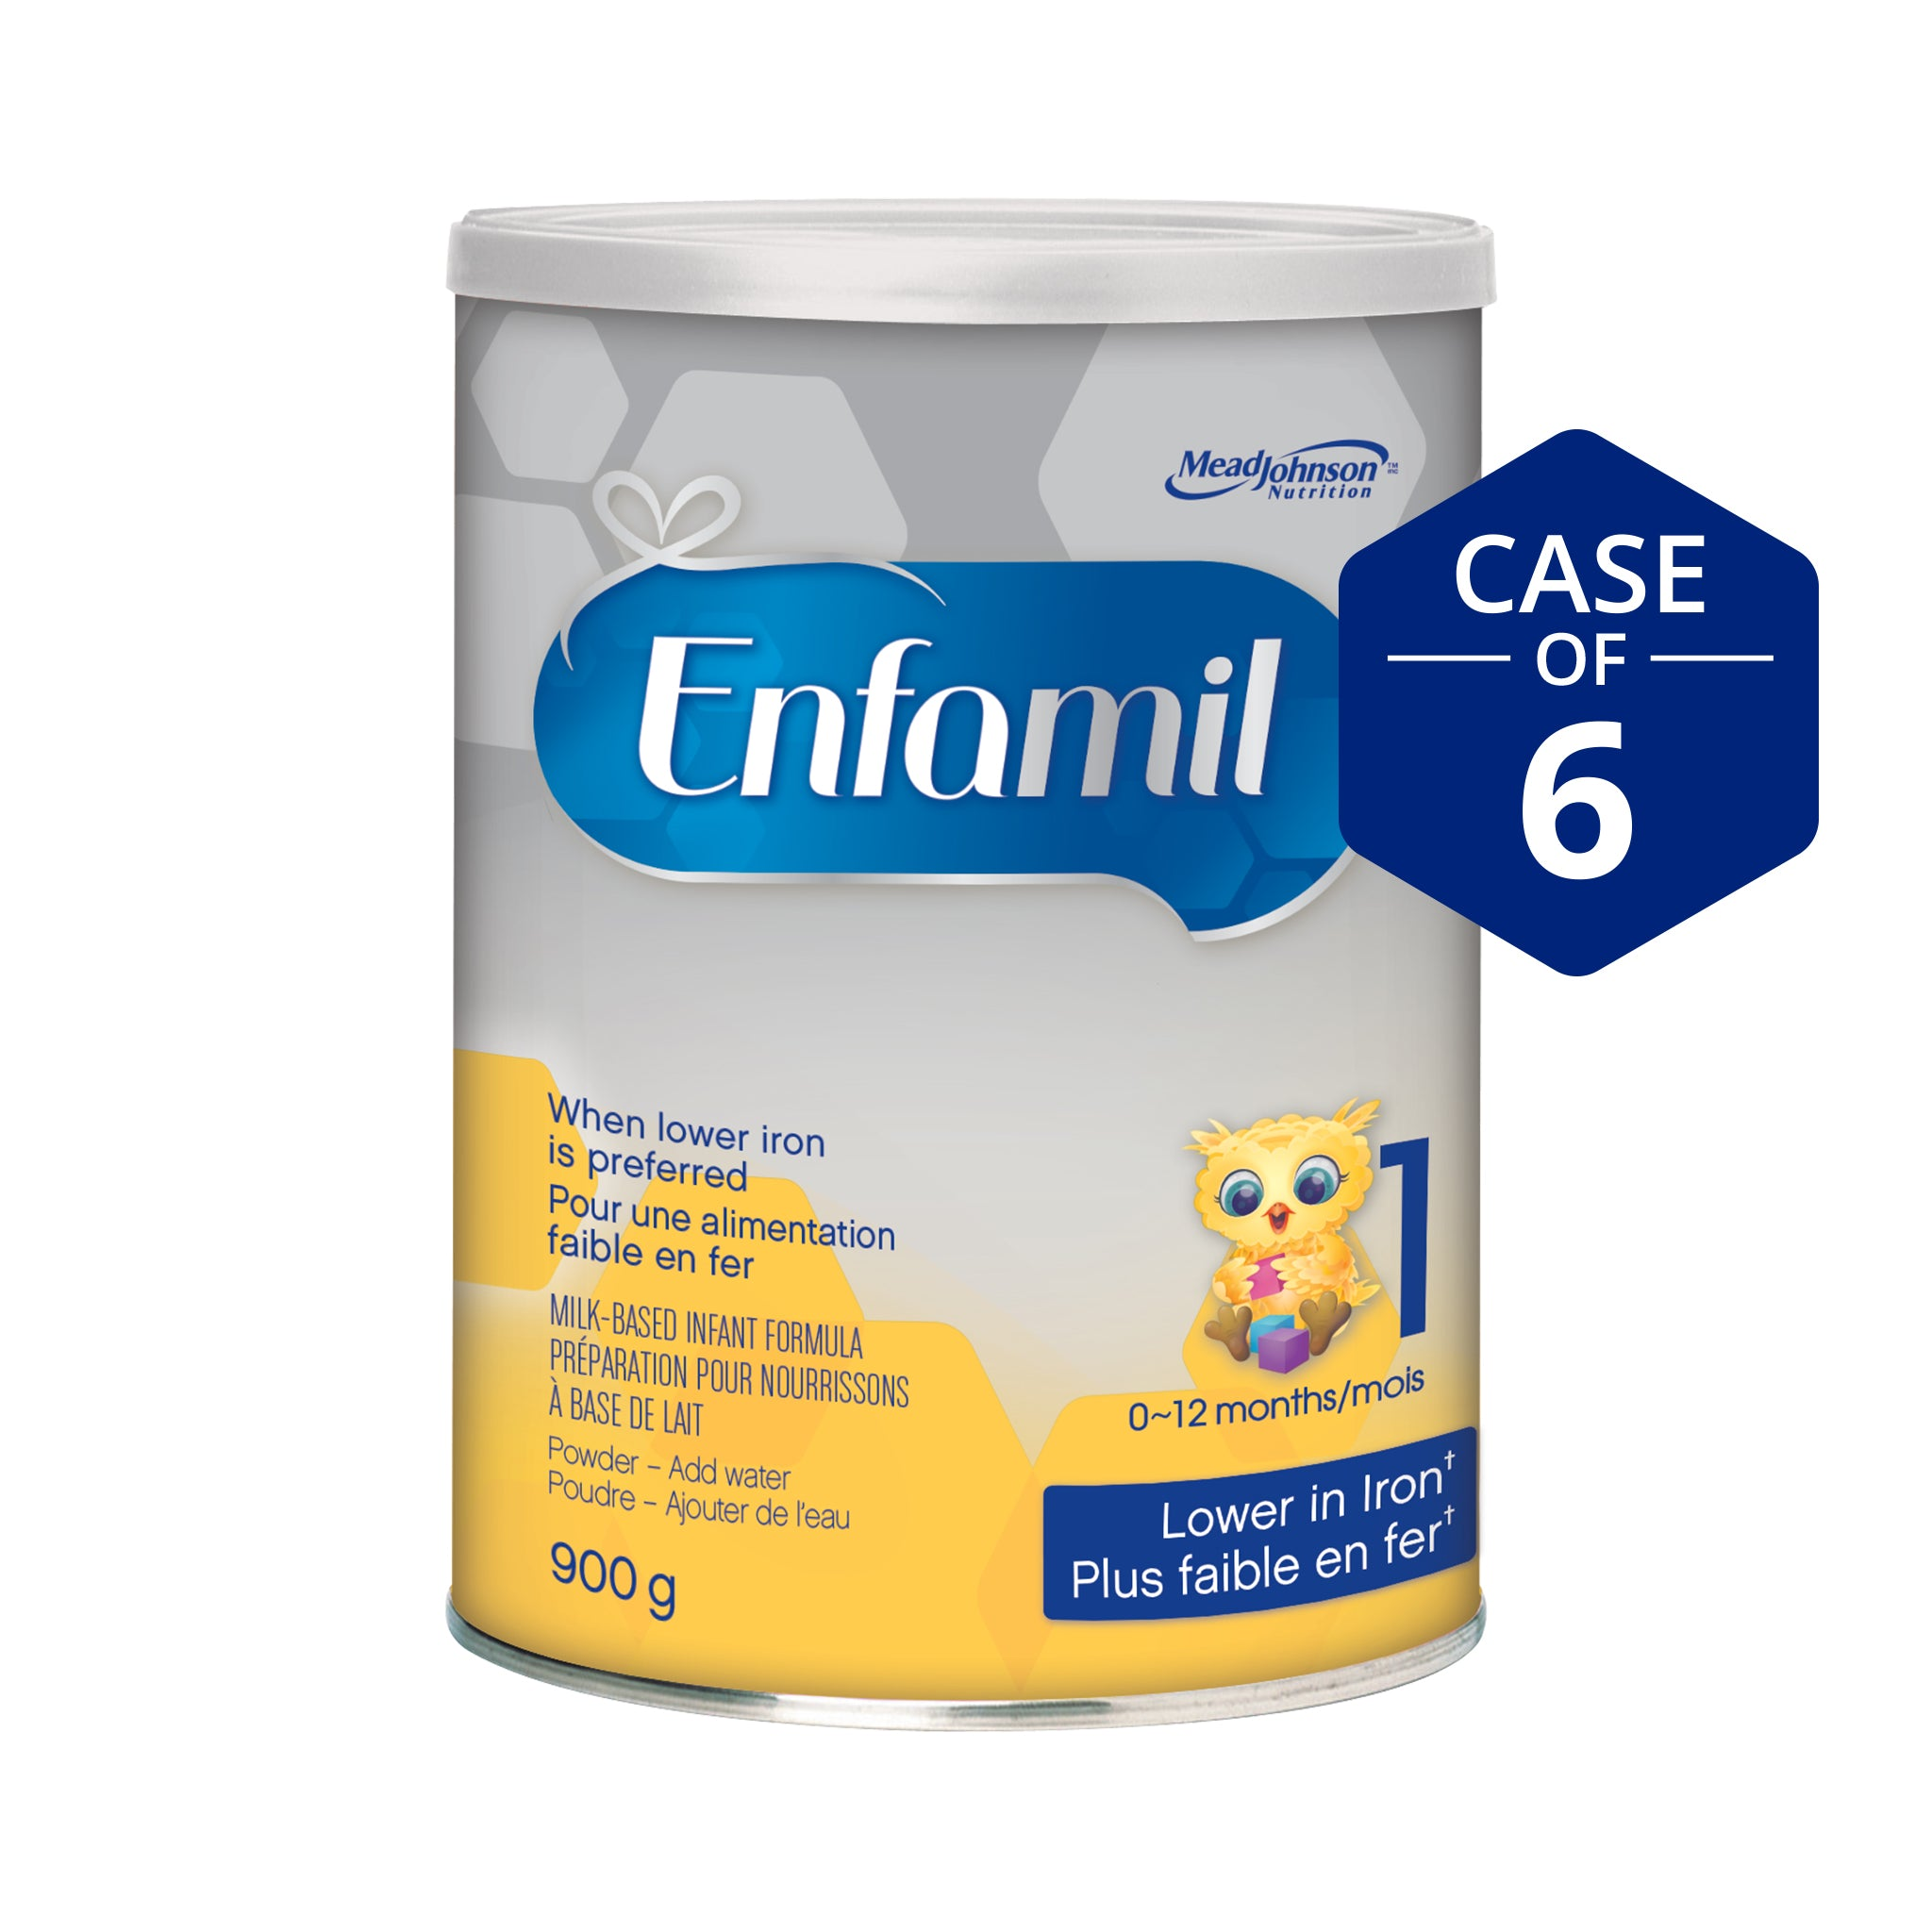 Enfamil® Lower Iron Infant Formula, Powder, 900g